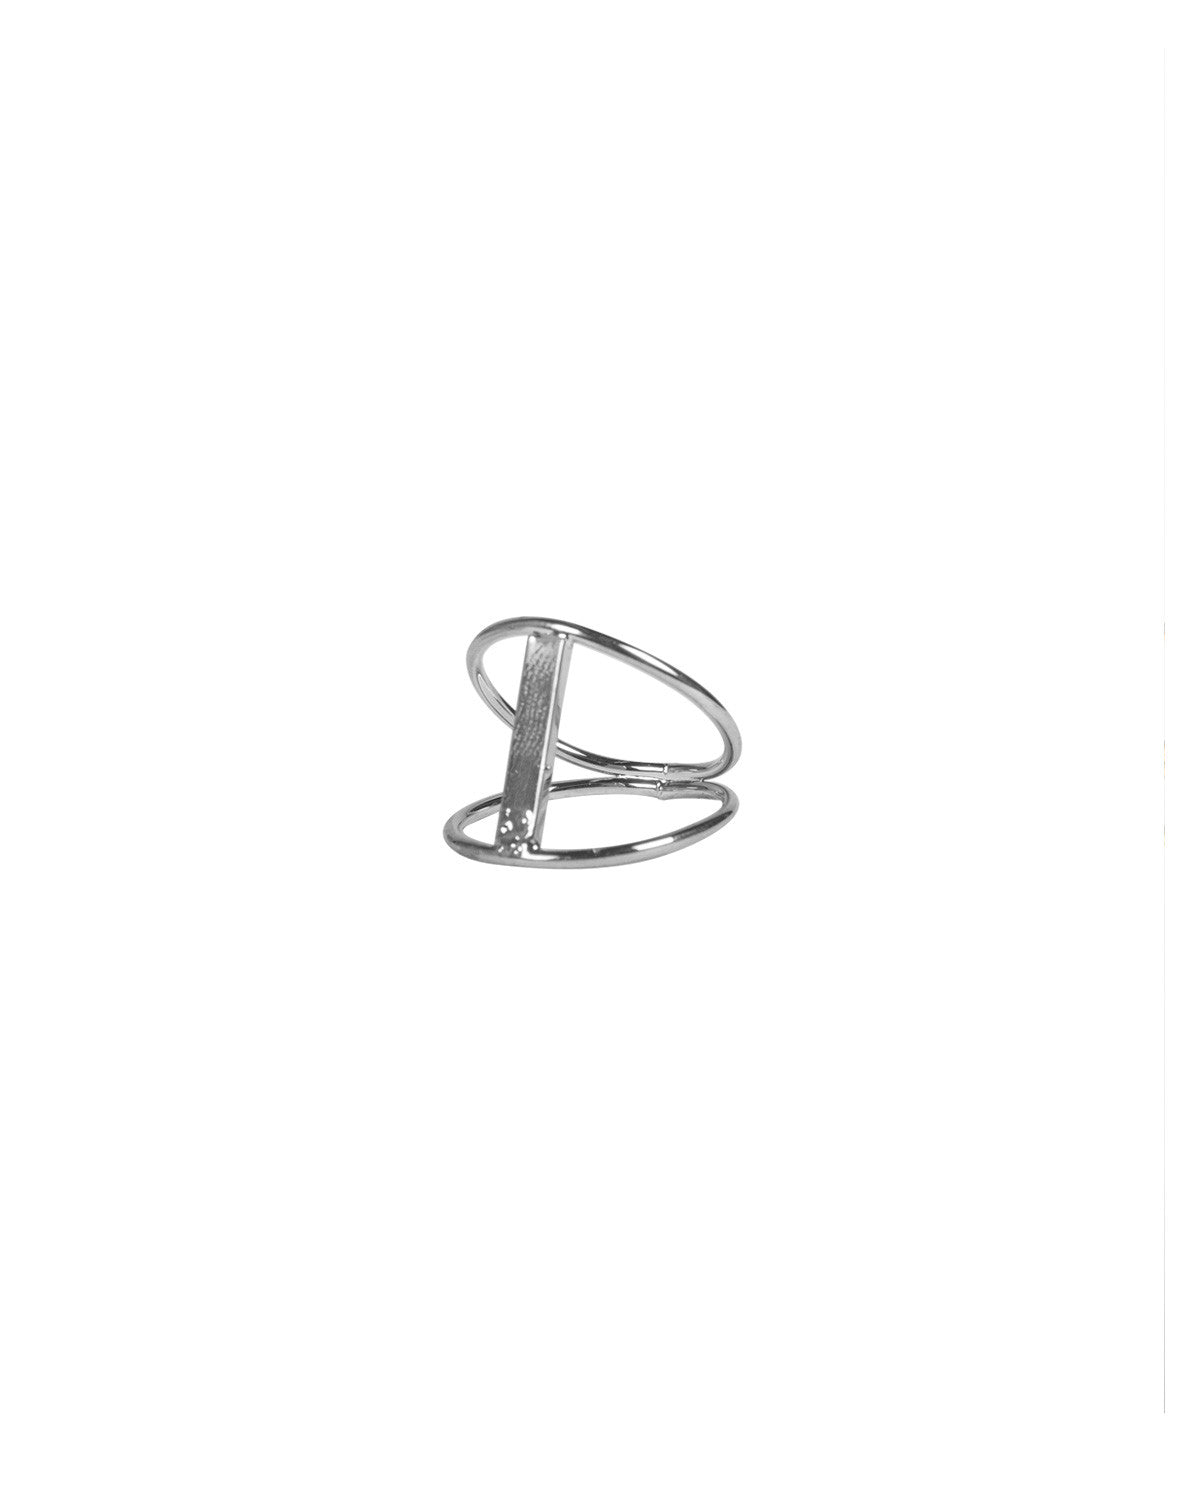 Cut Out Bar Knuckle Ring - Silver - Ana GR 7567-Silver